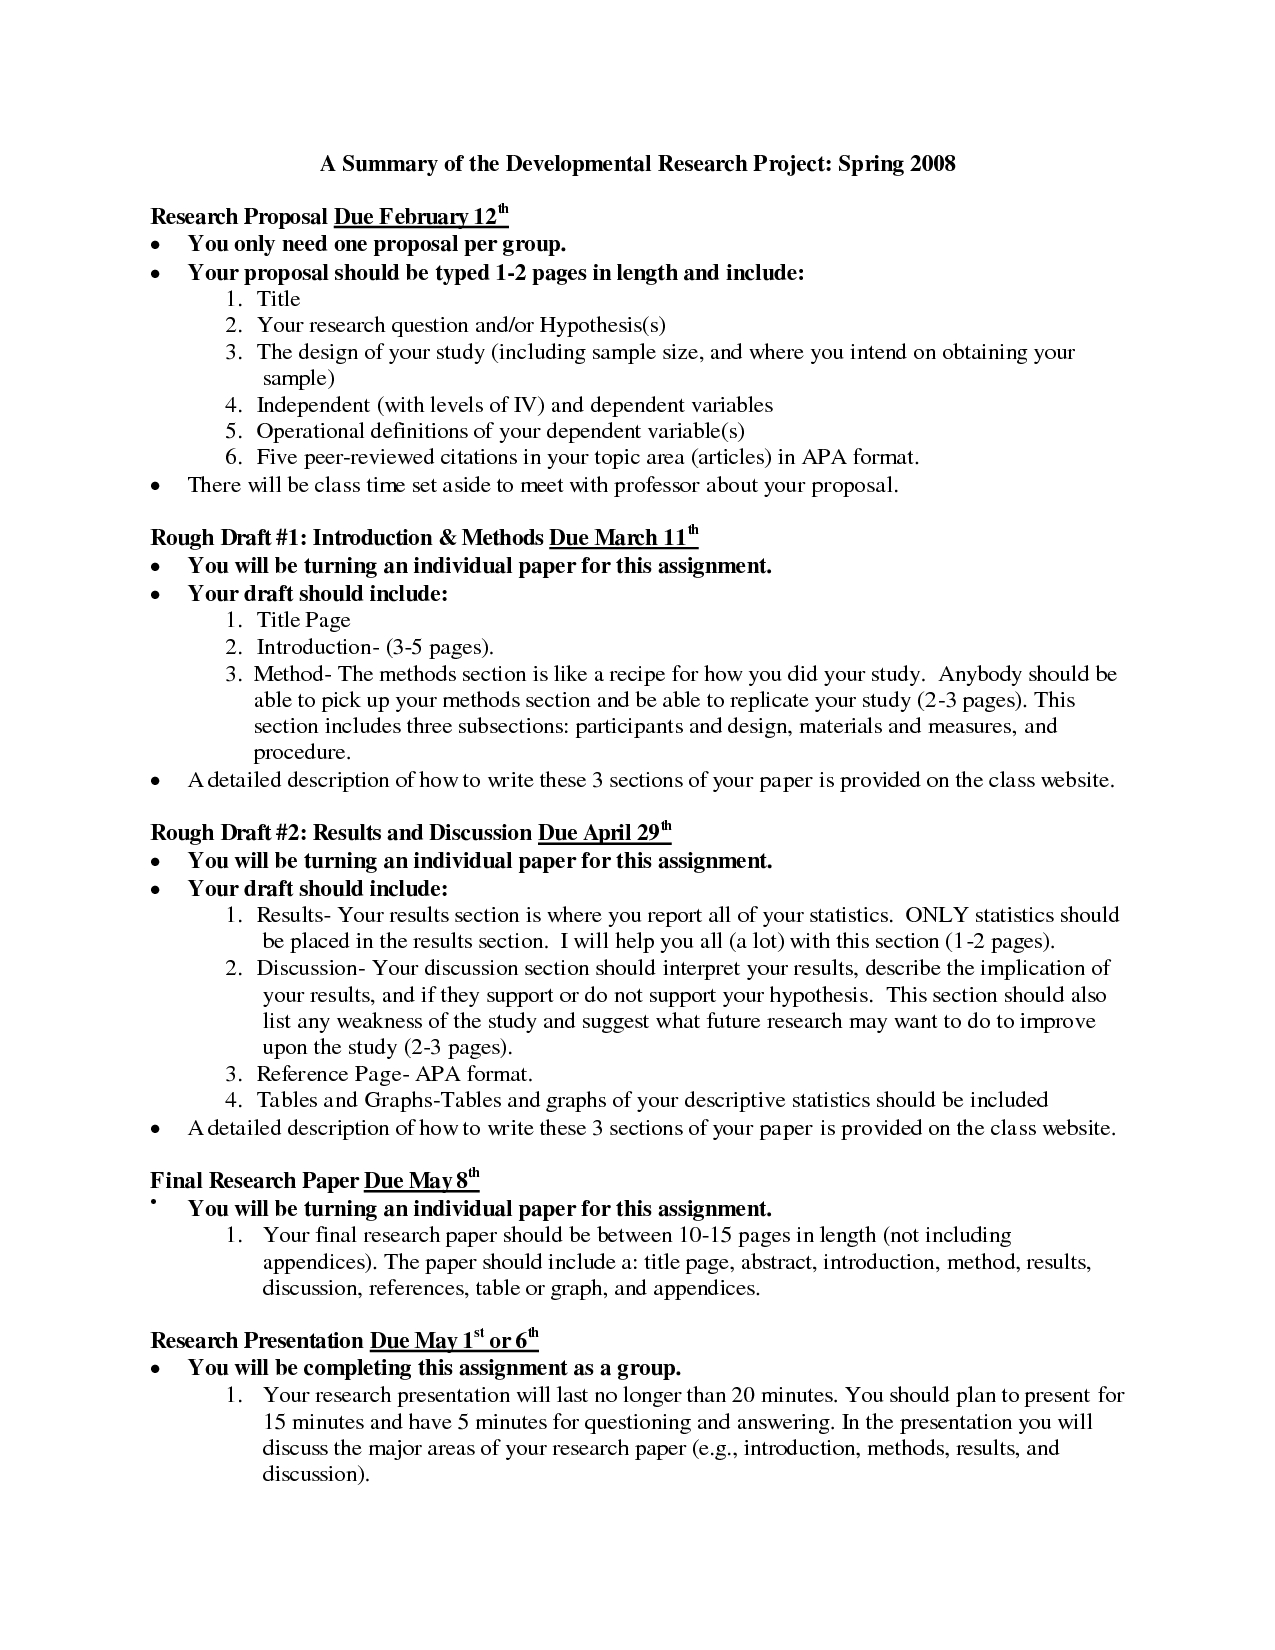 009 Good Topics For Researchs Psychology Undergraduate Resume Unique Sample Of Awesome Research Papers Argumentative In College Interesting Paper The Philippines Full